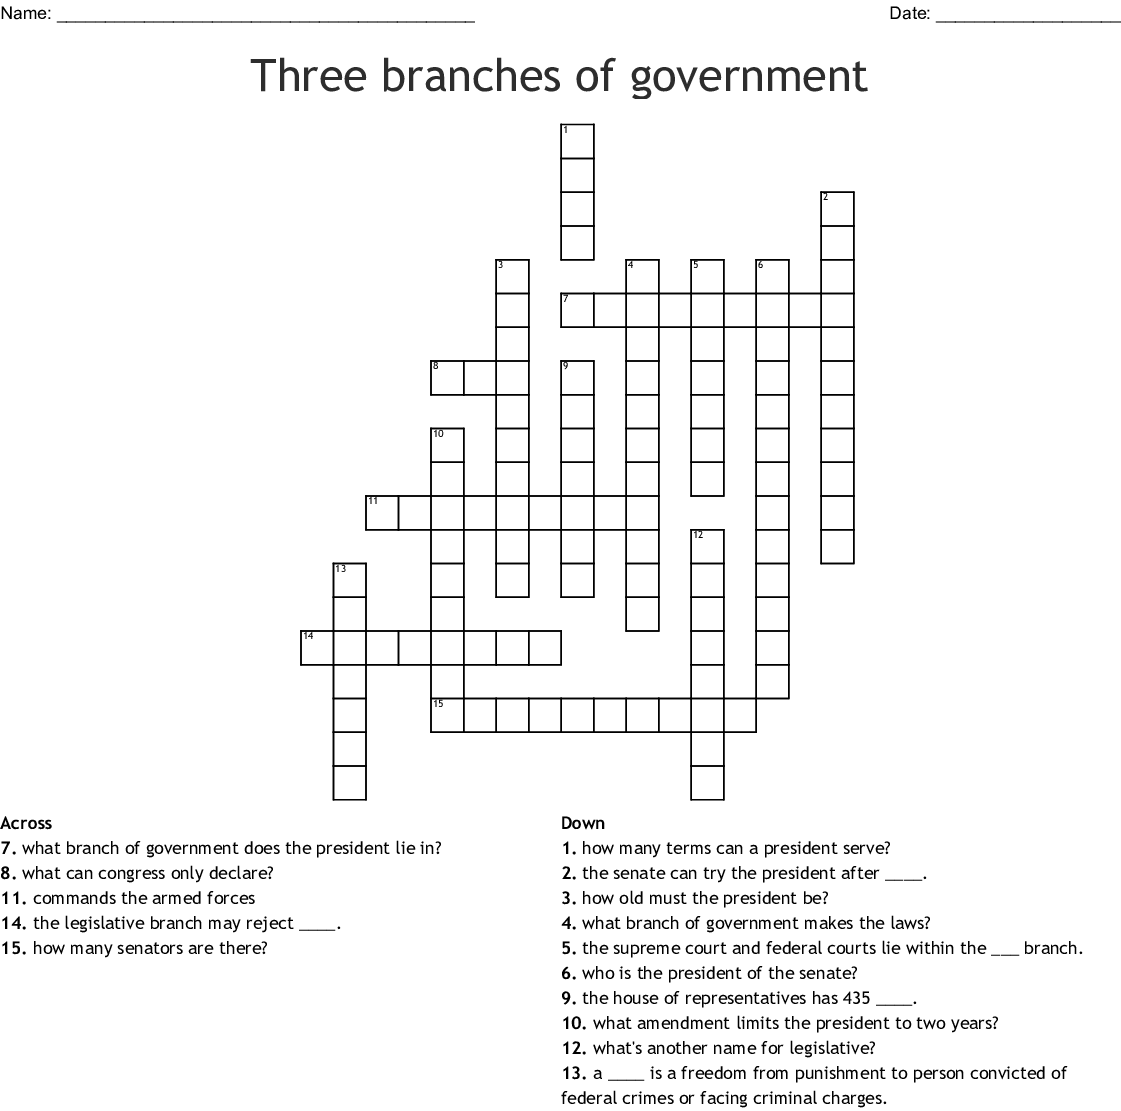 Three Branches Of Government Crossword